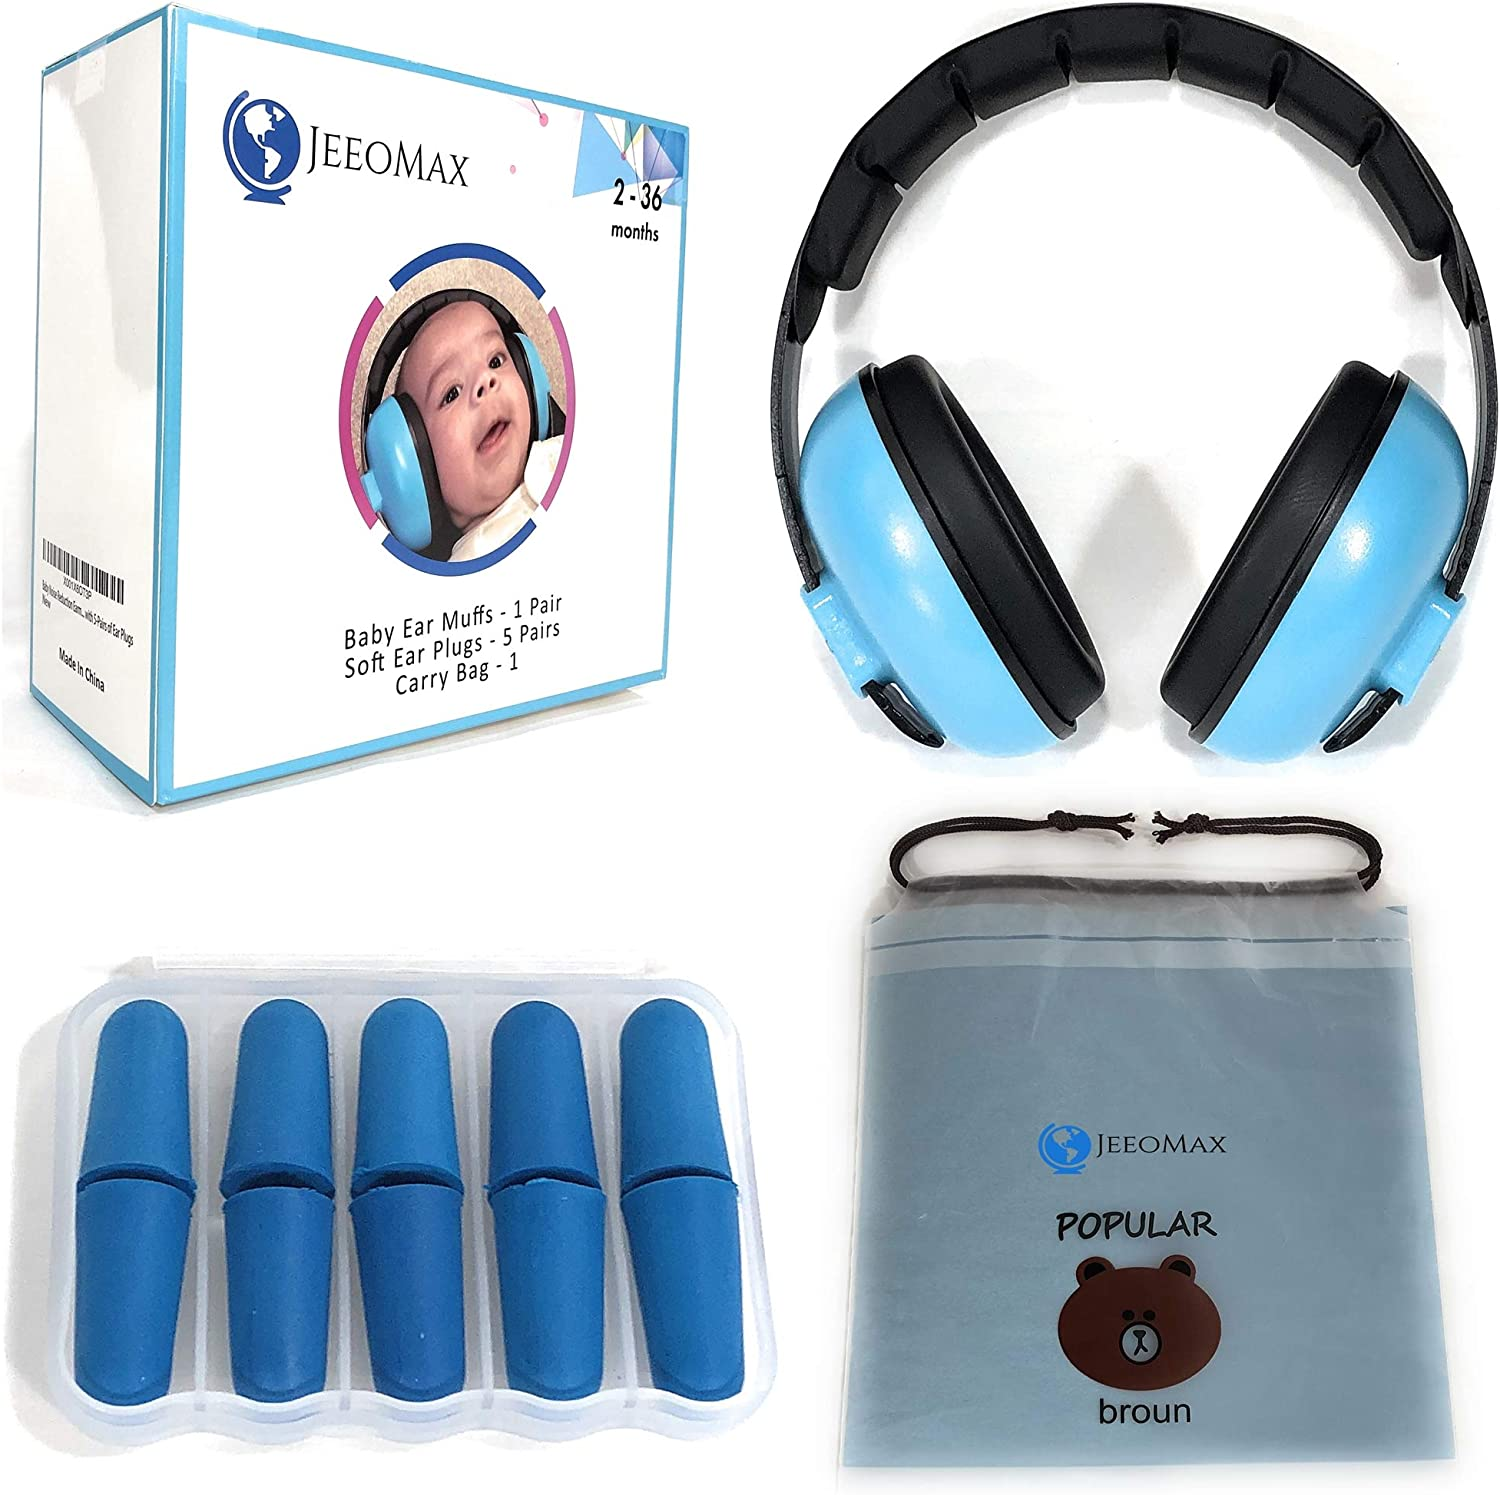 JeeoMax Baby Ear Muffs Noise Protection Headphones and Earplugs Pack - Ages 2 to 36 Months